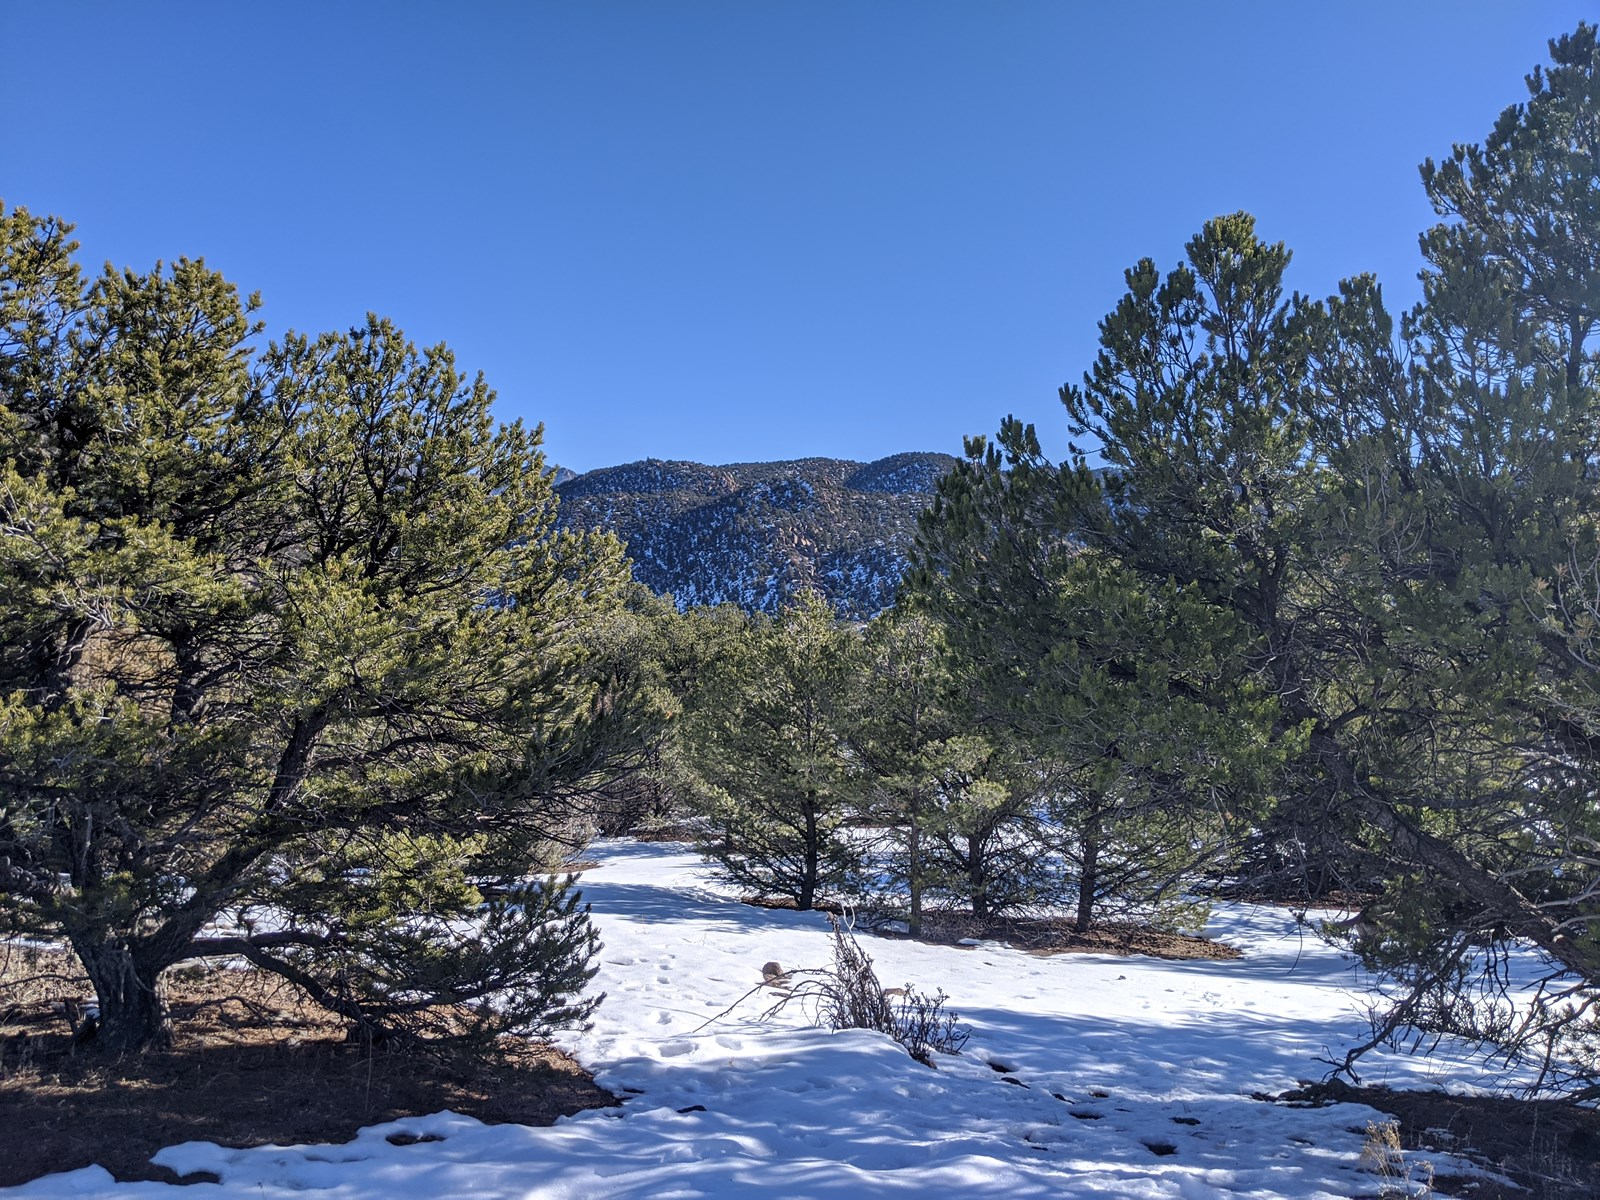 Property For Sale in Mtns Near Salida CO & Arkansas River